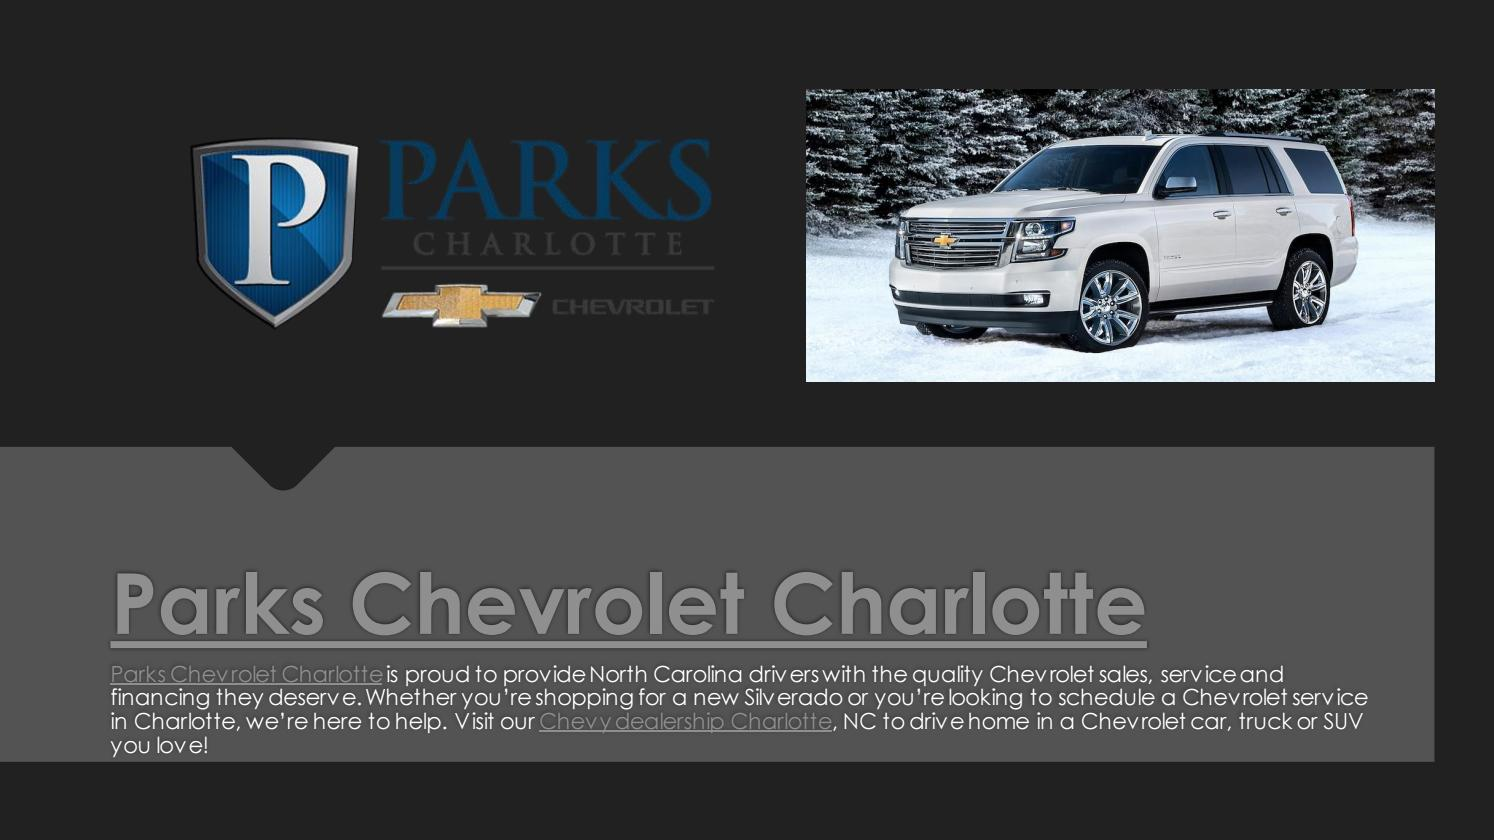 Parks Chevrolet Charlotte Chevrolet Dealership In Charlotte Nc Chevy Dealership Gastonia Nc By Parks Chevrolet Charlotte Issuu